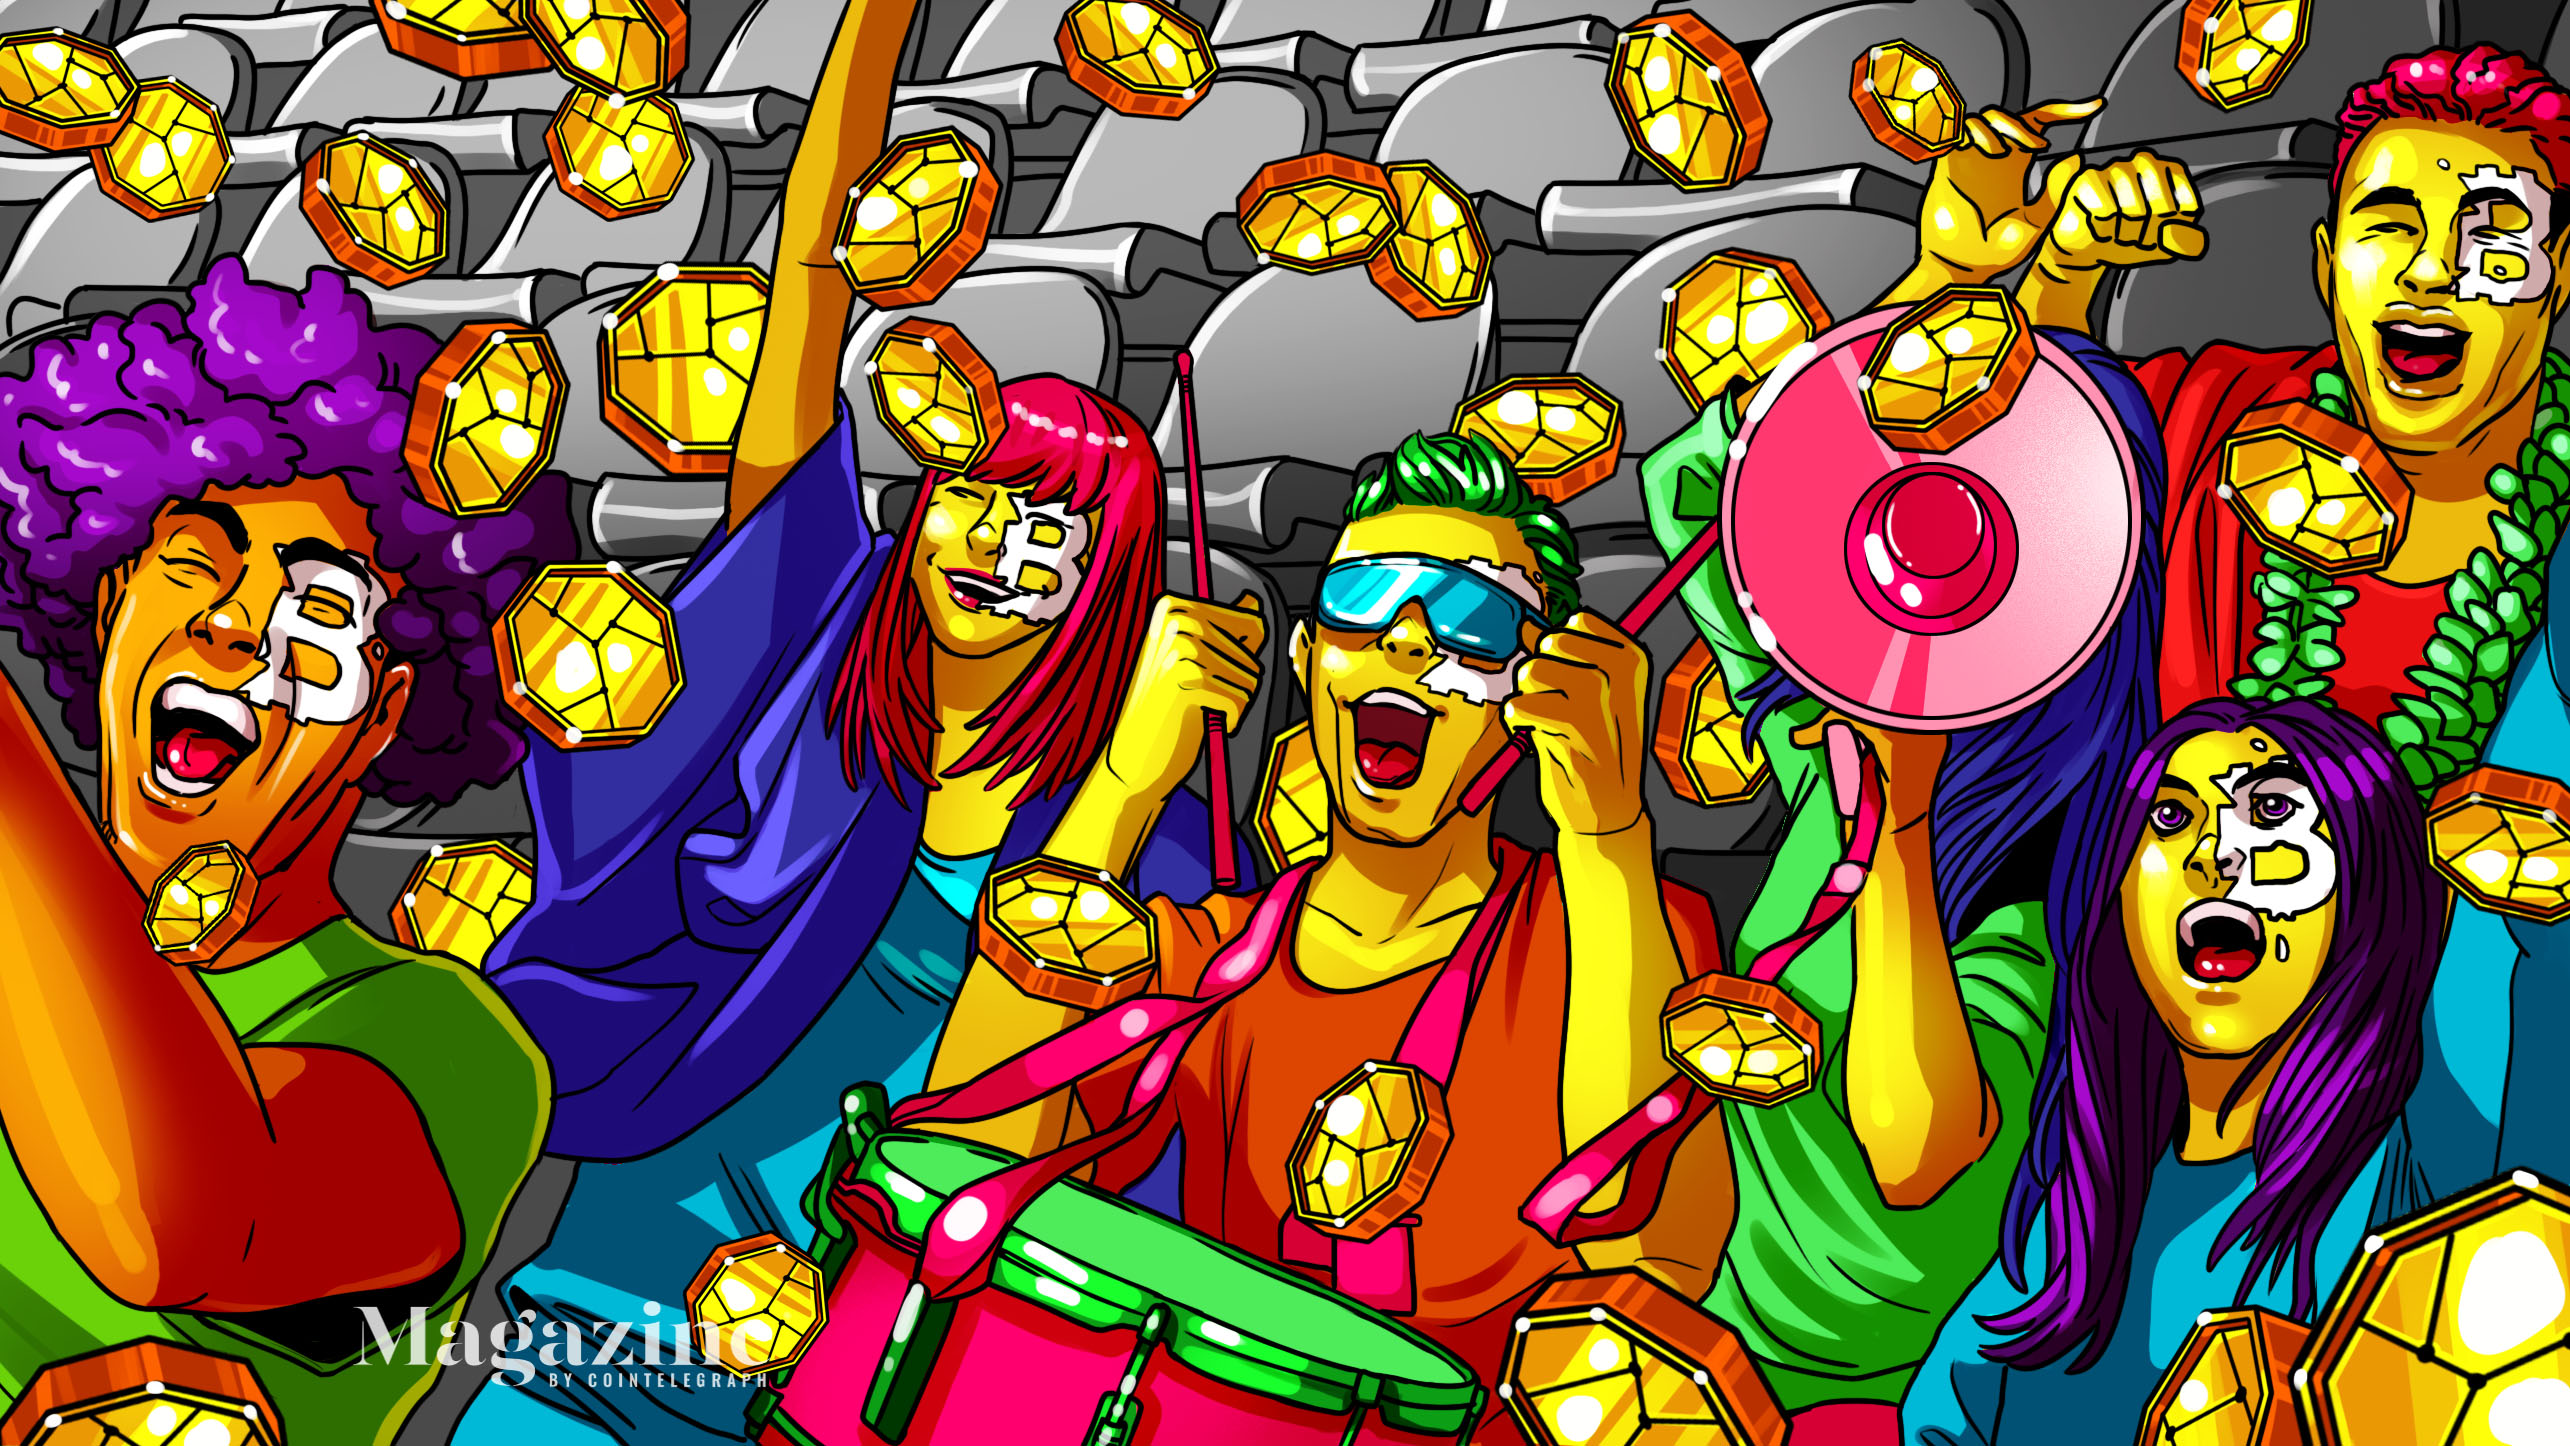 Day trading your favorite sports team – Cointelegraph Magazine